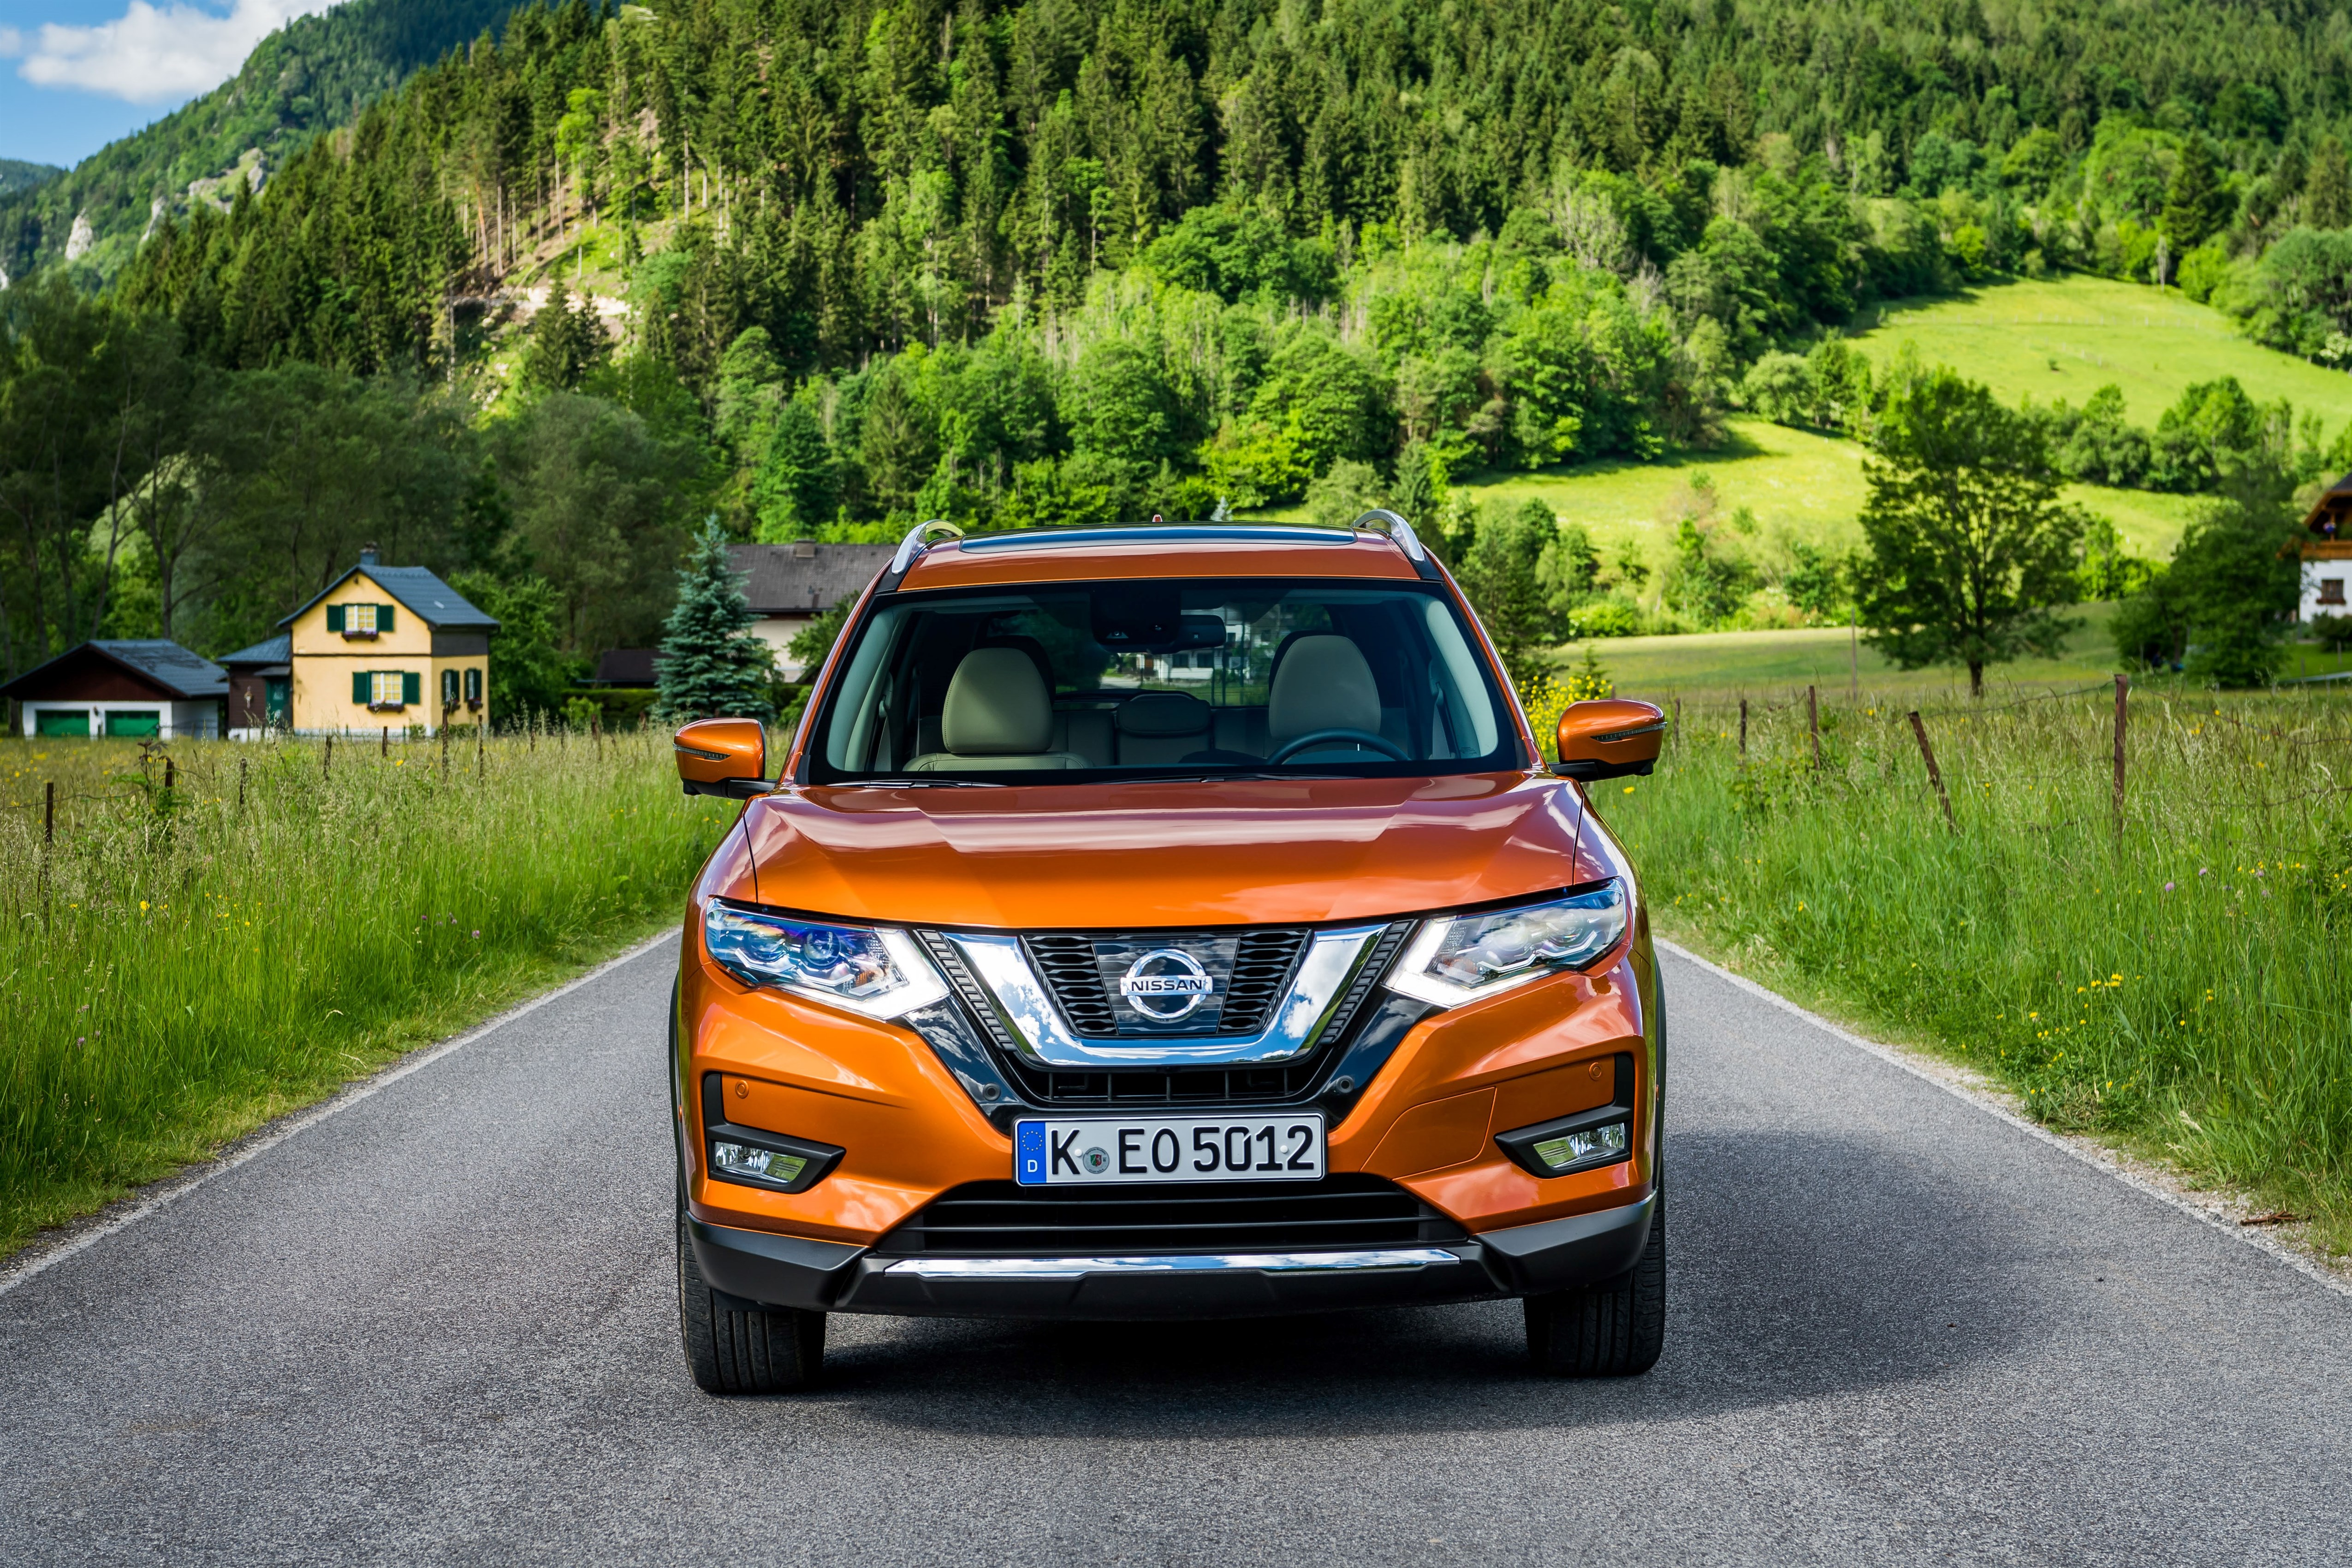 Neue x trail stadt garage rimini ag winterthur for Garage nissan paris